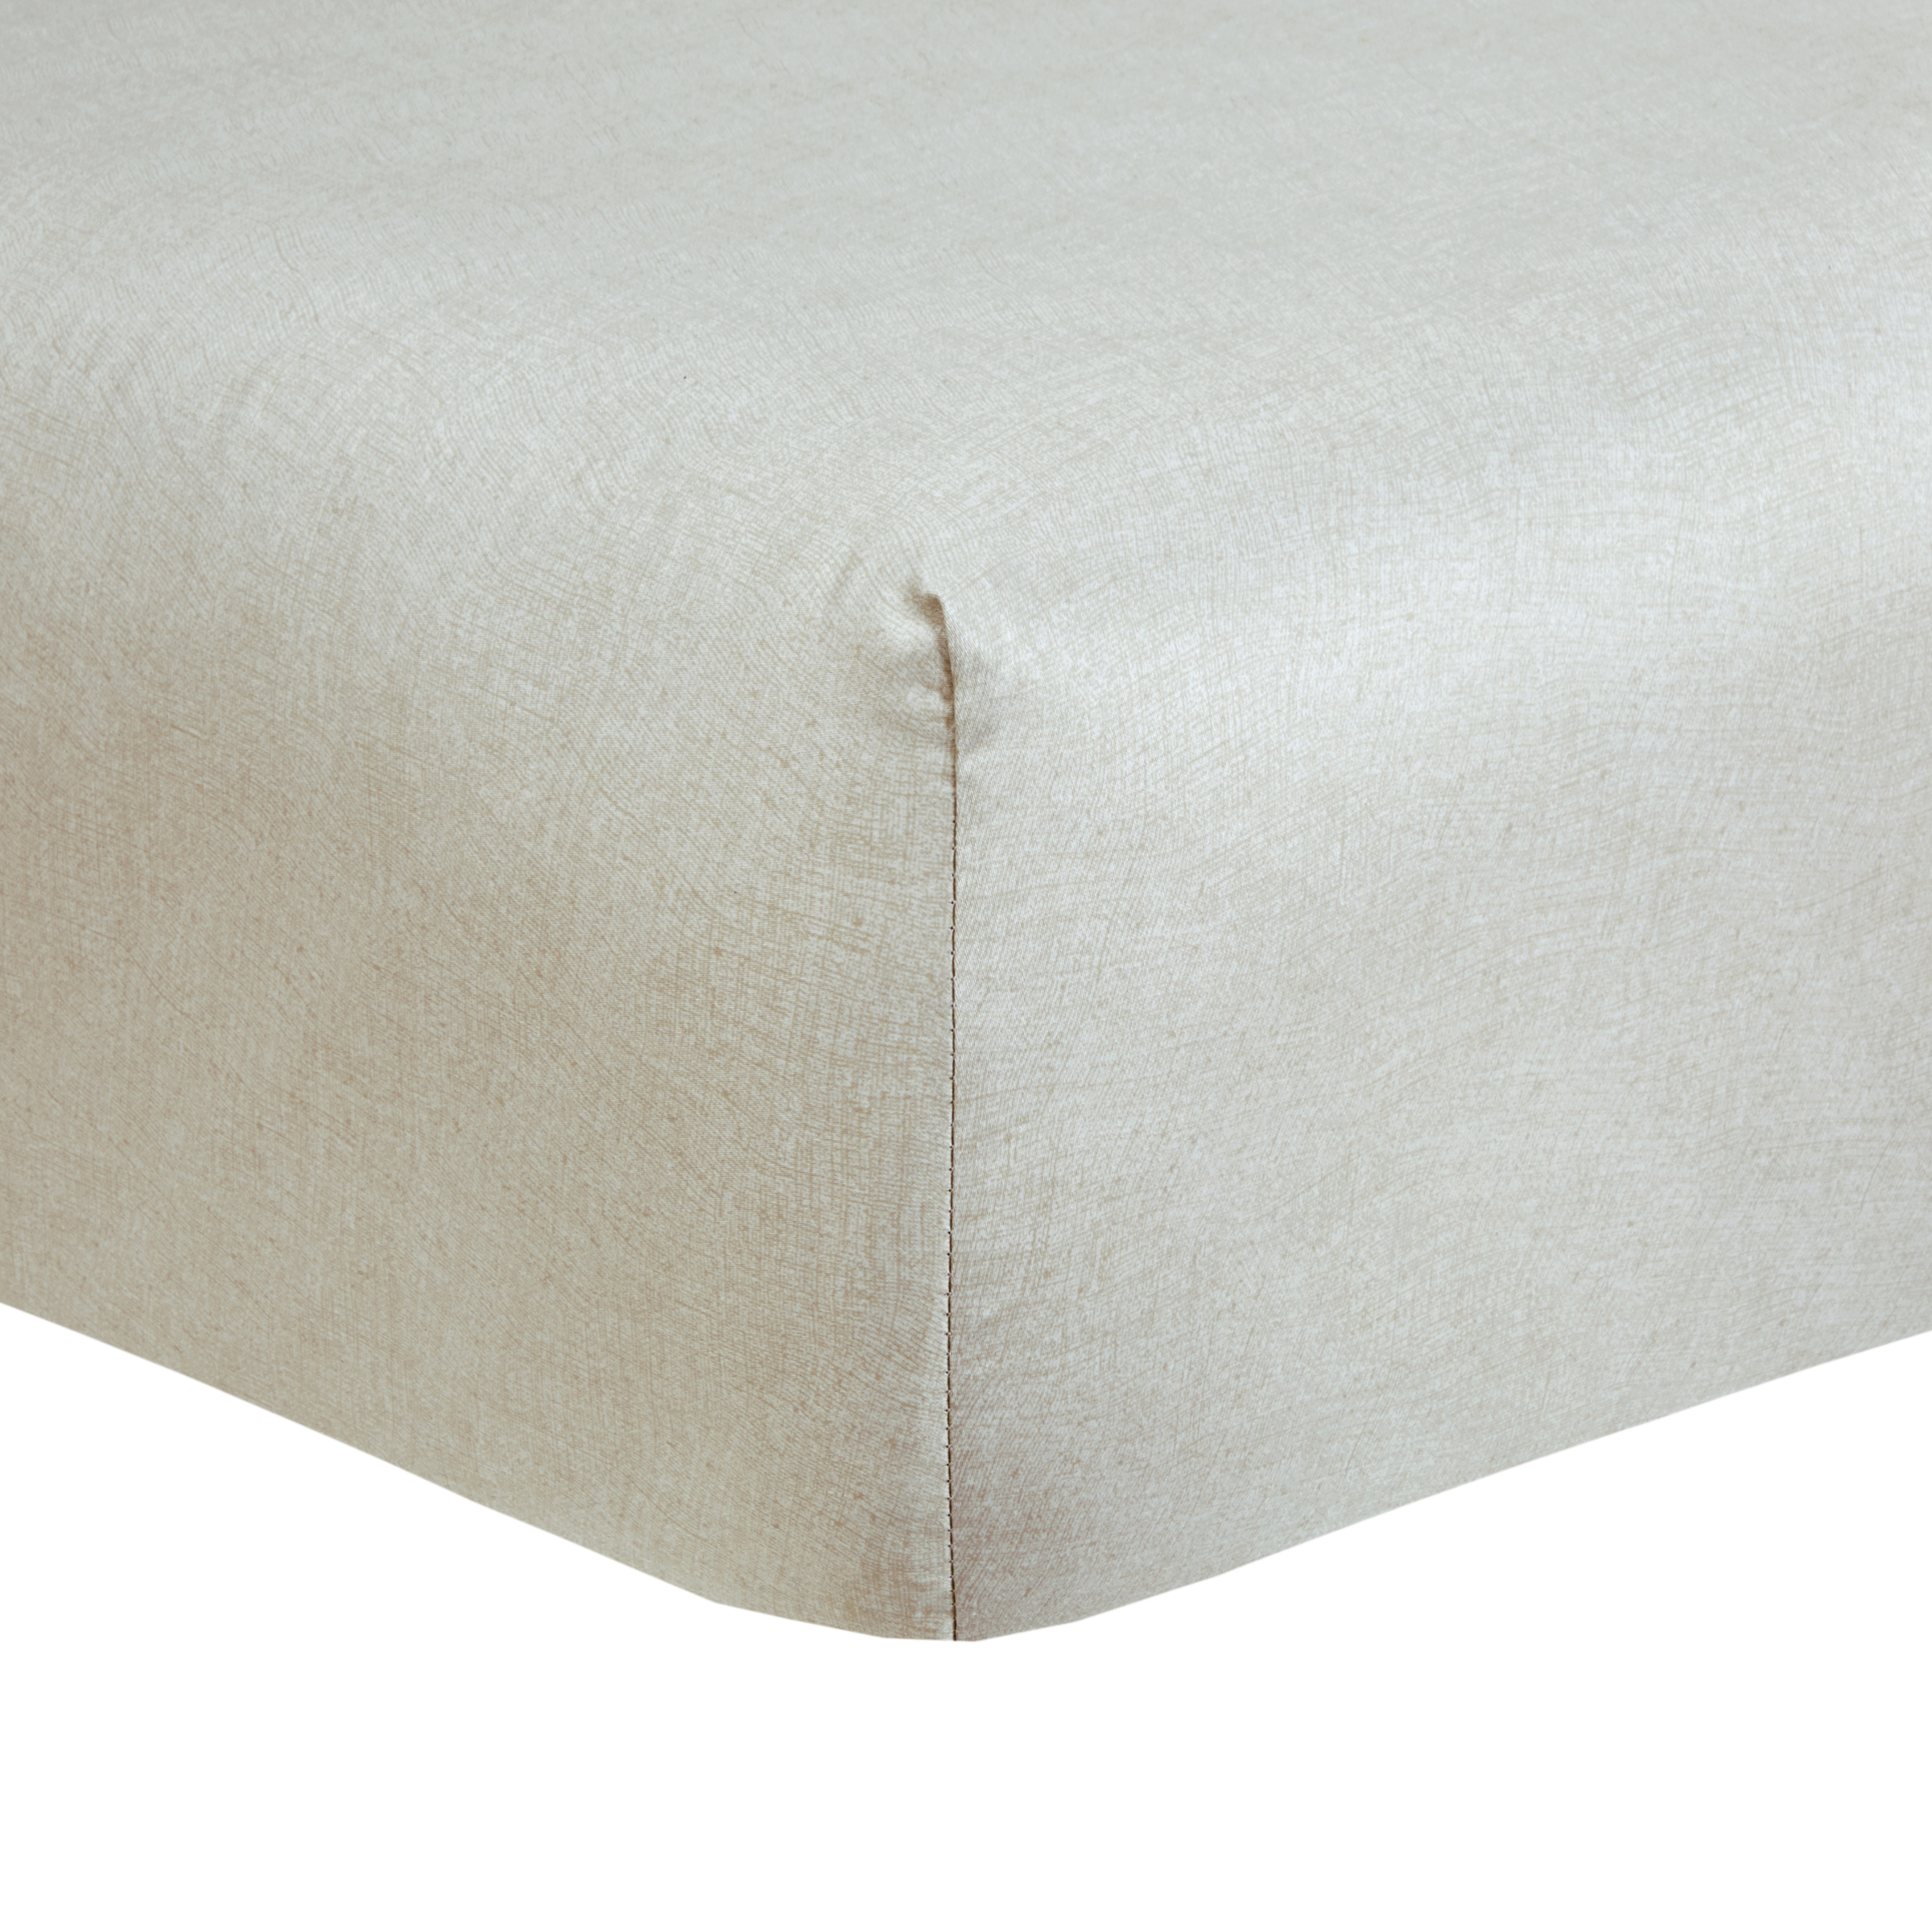 196452 - 1 - Fitted sheet LILIA - Boss Home.jpg